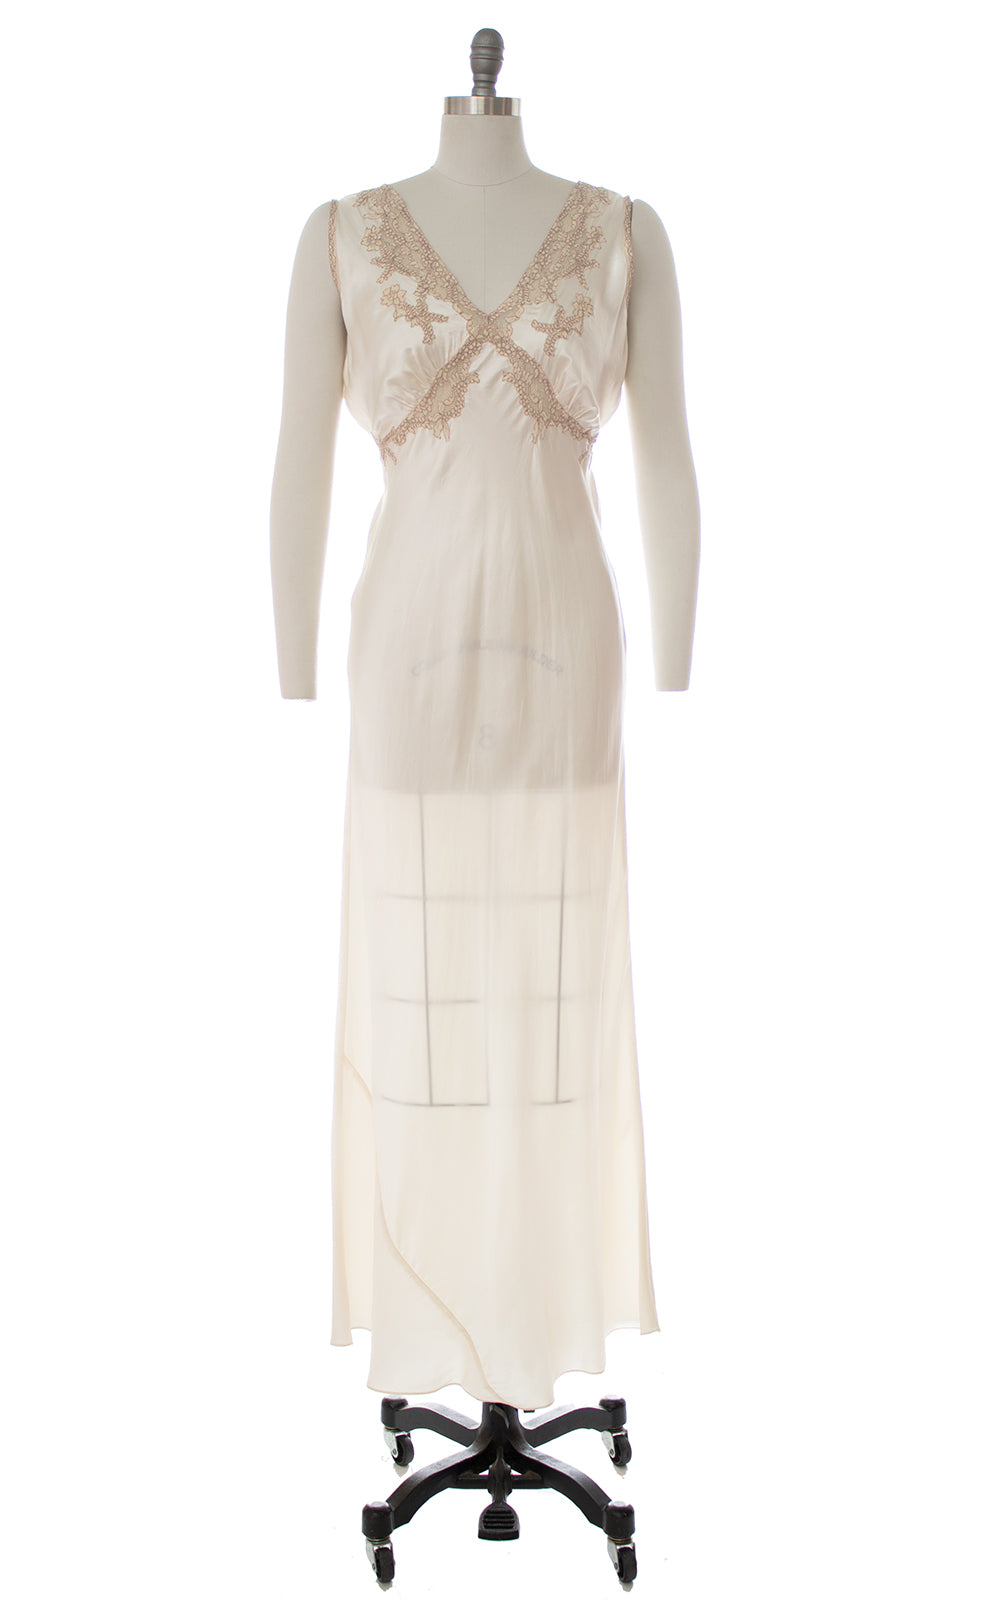 1940s Bias-Cut Ivory Rayon Satin Nightgown